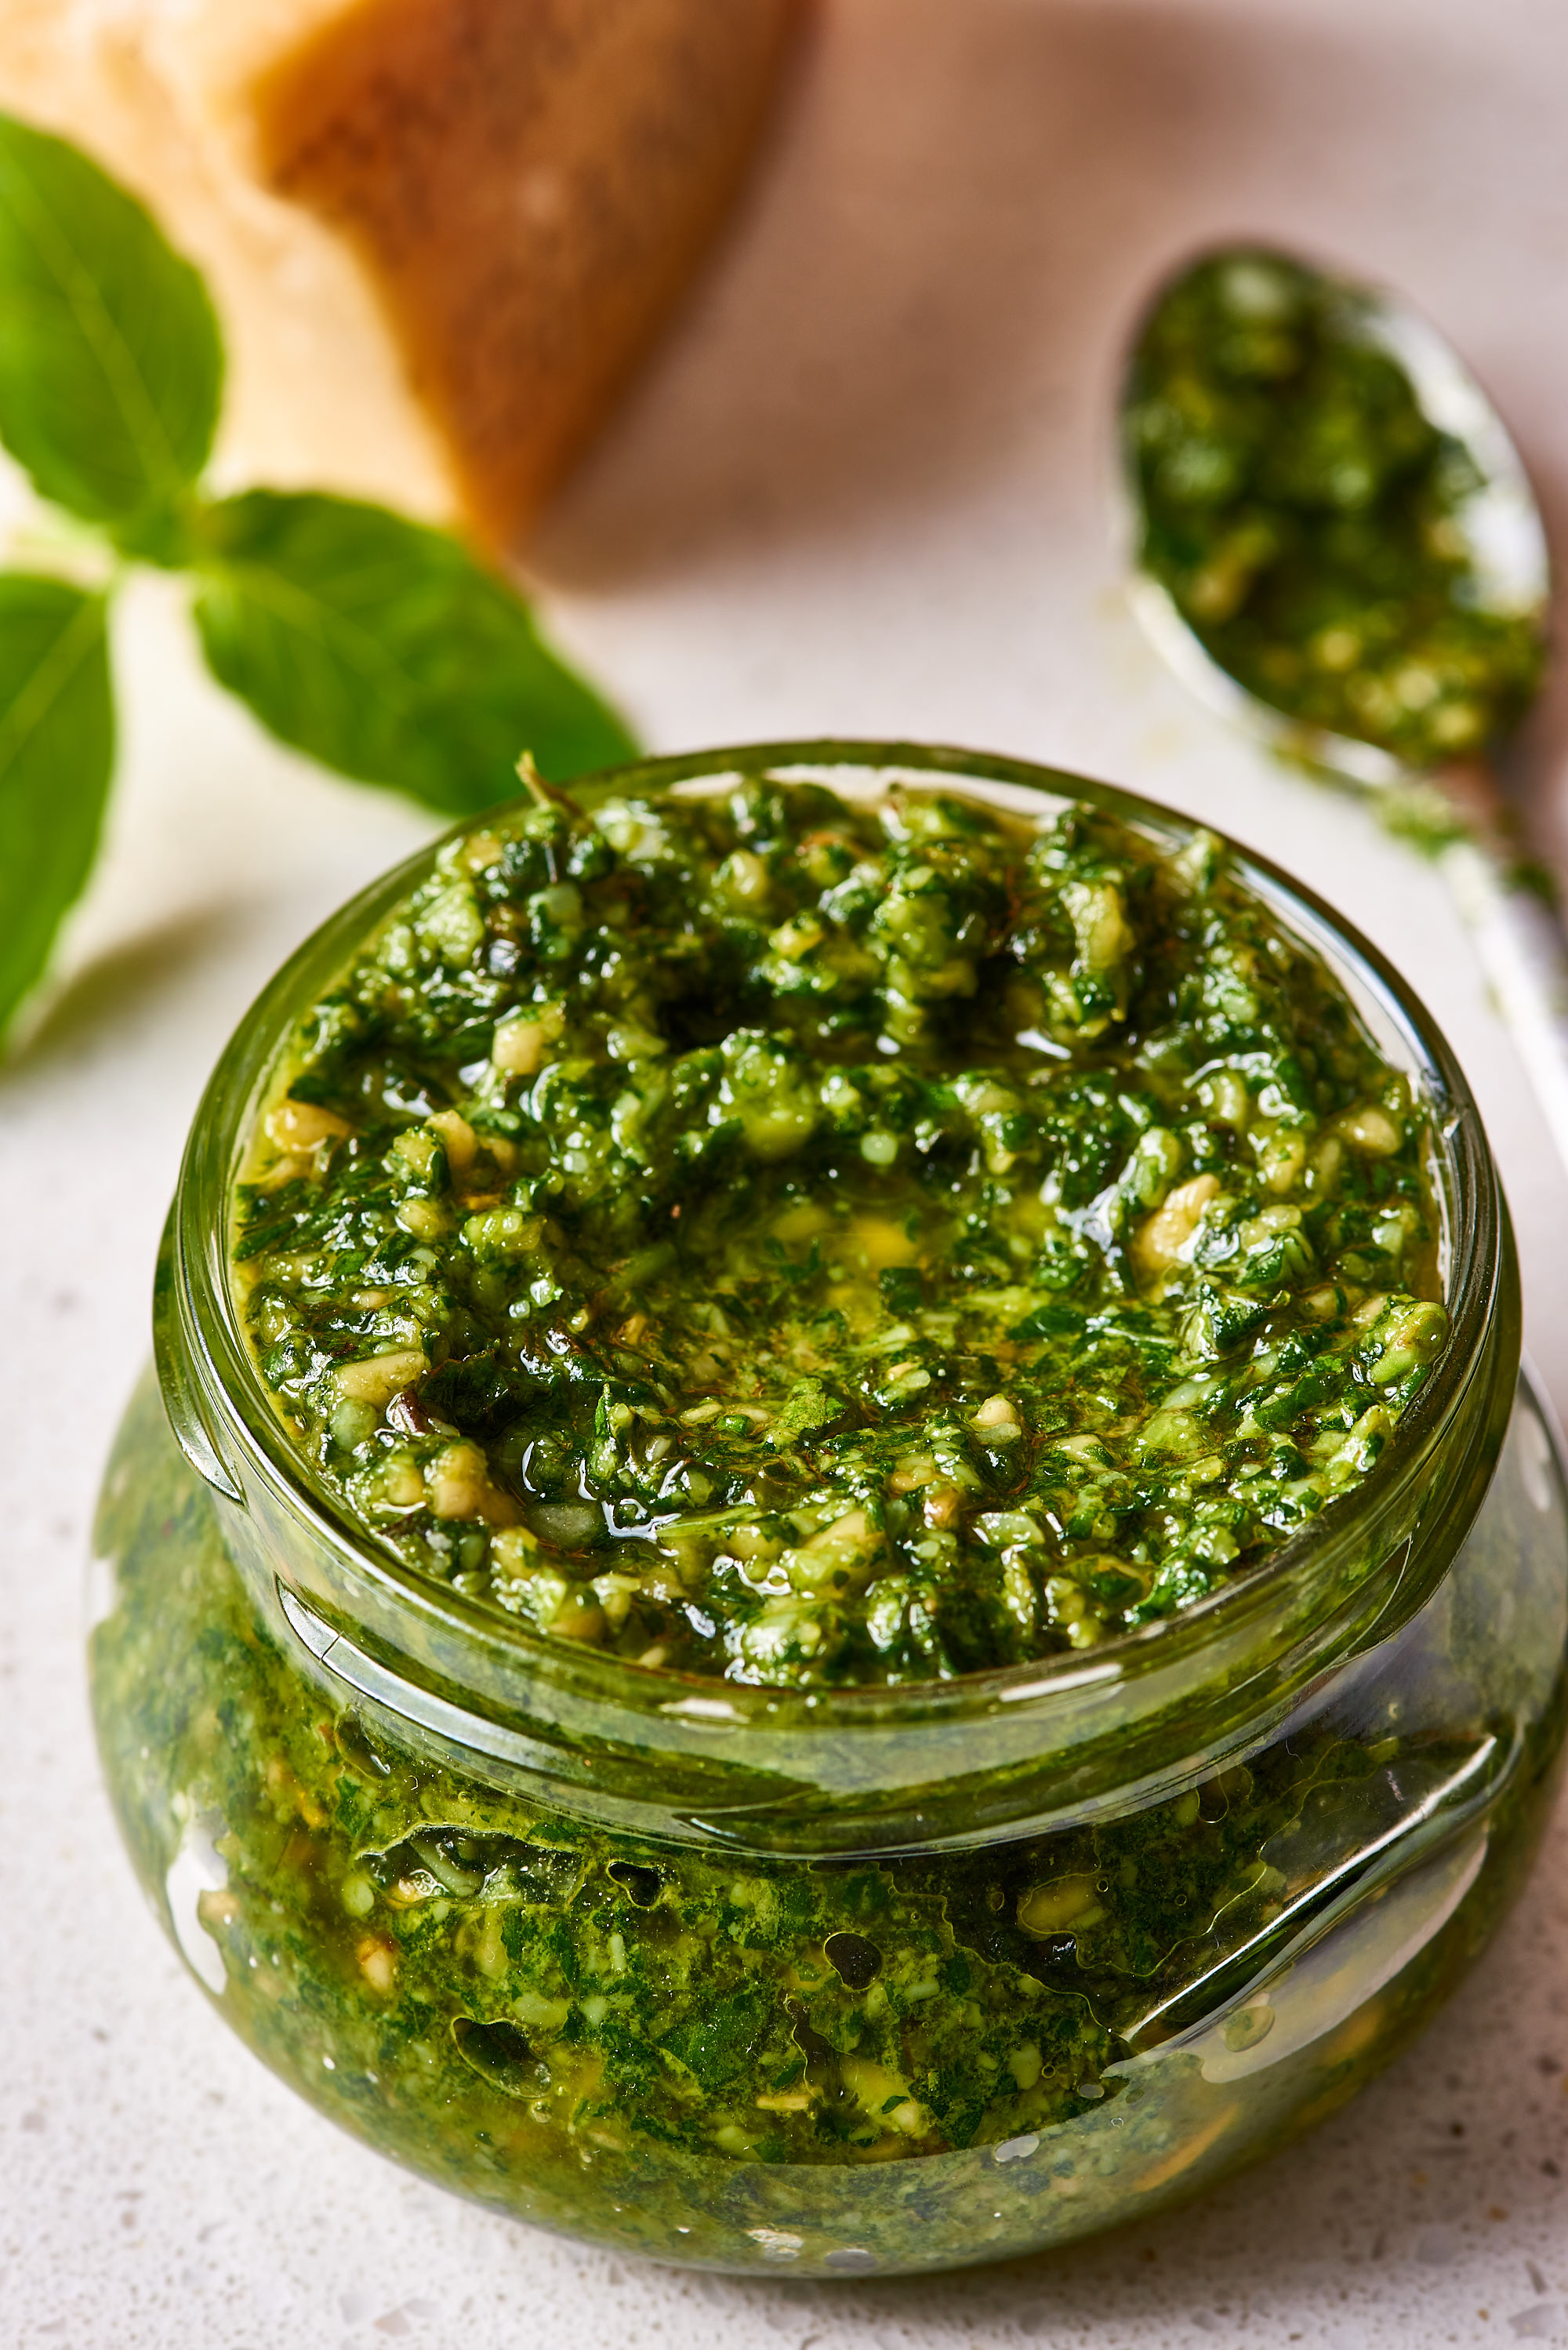 How To Make Perfect Pesto Every Time | Kitchn